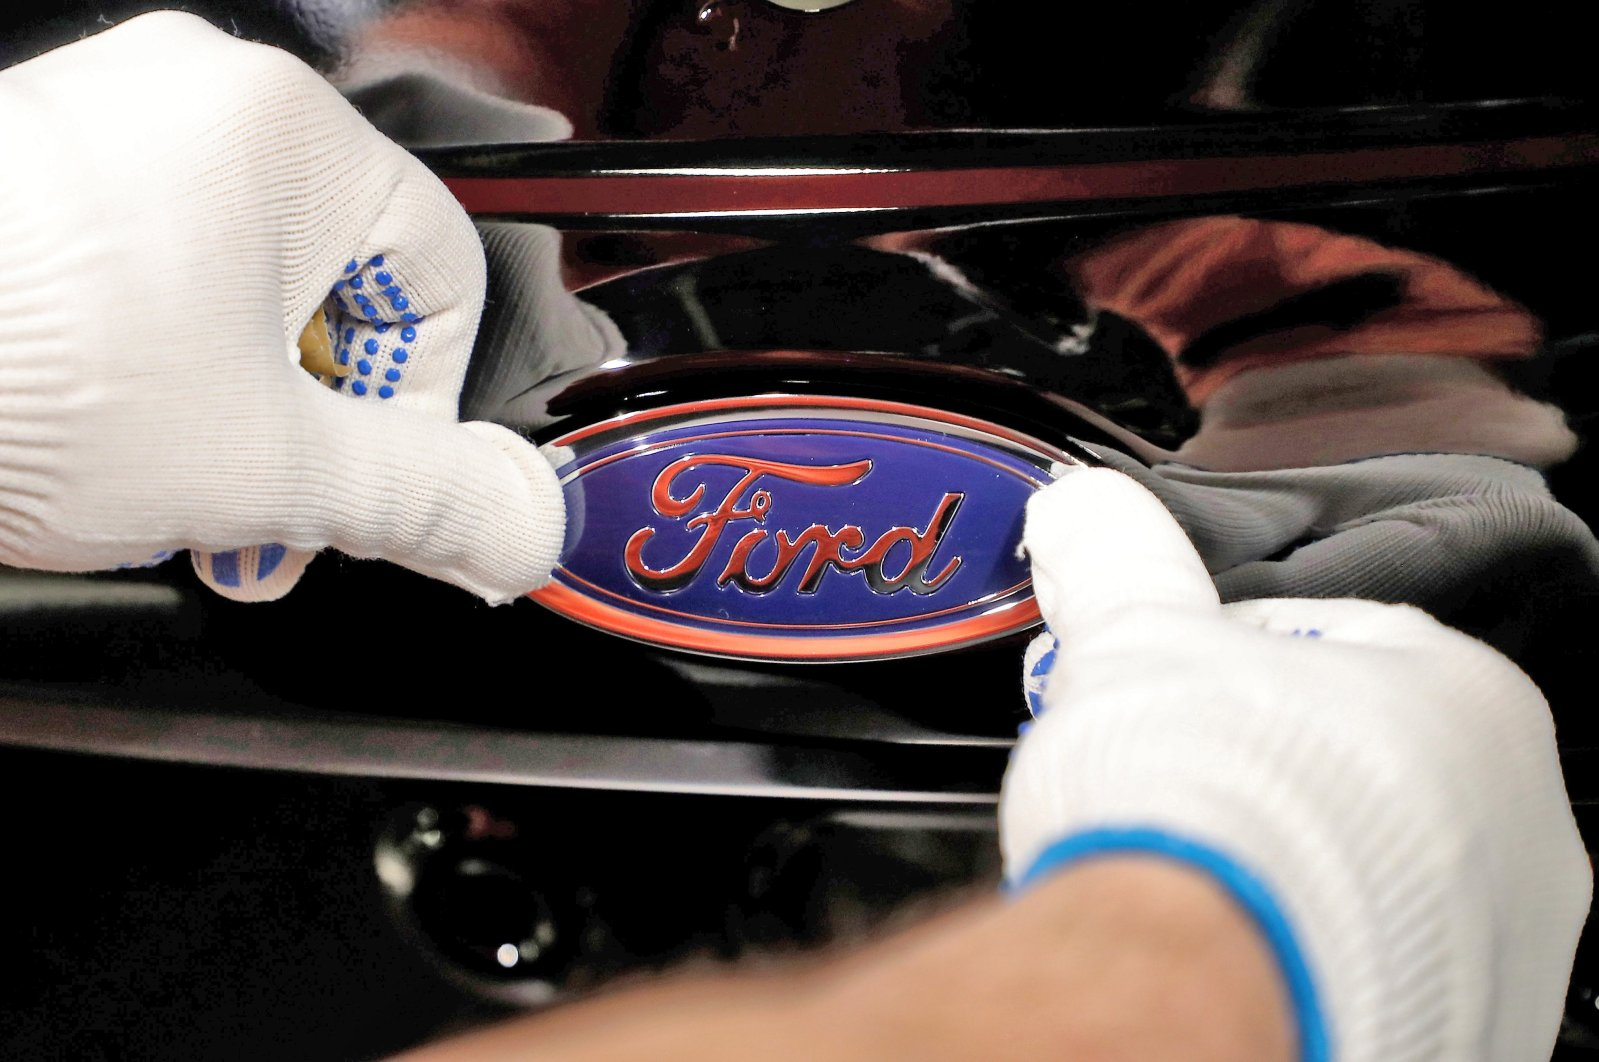 A worker attaches the Ford logo to a Fiesta car at the U.S. car manufacturer plant Ford in Cologne, Germany, Jan. 18, 2019. (EPA Photo)